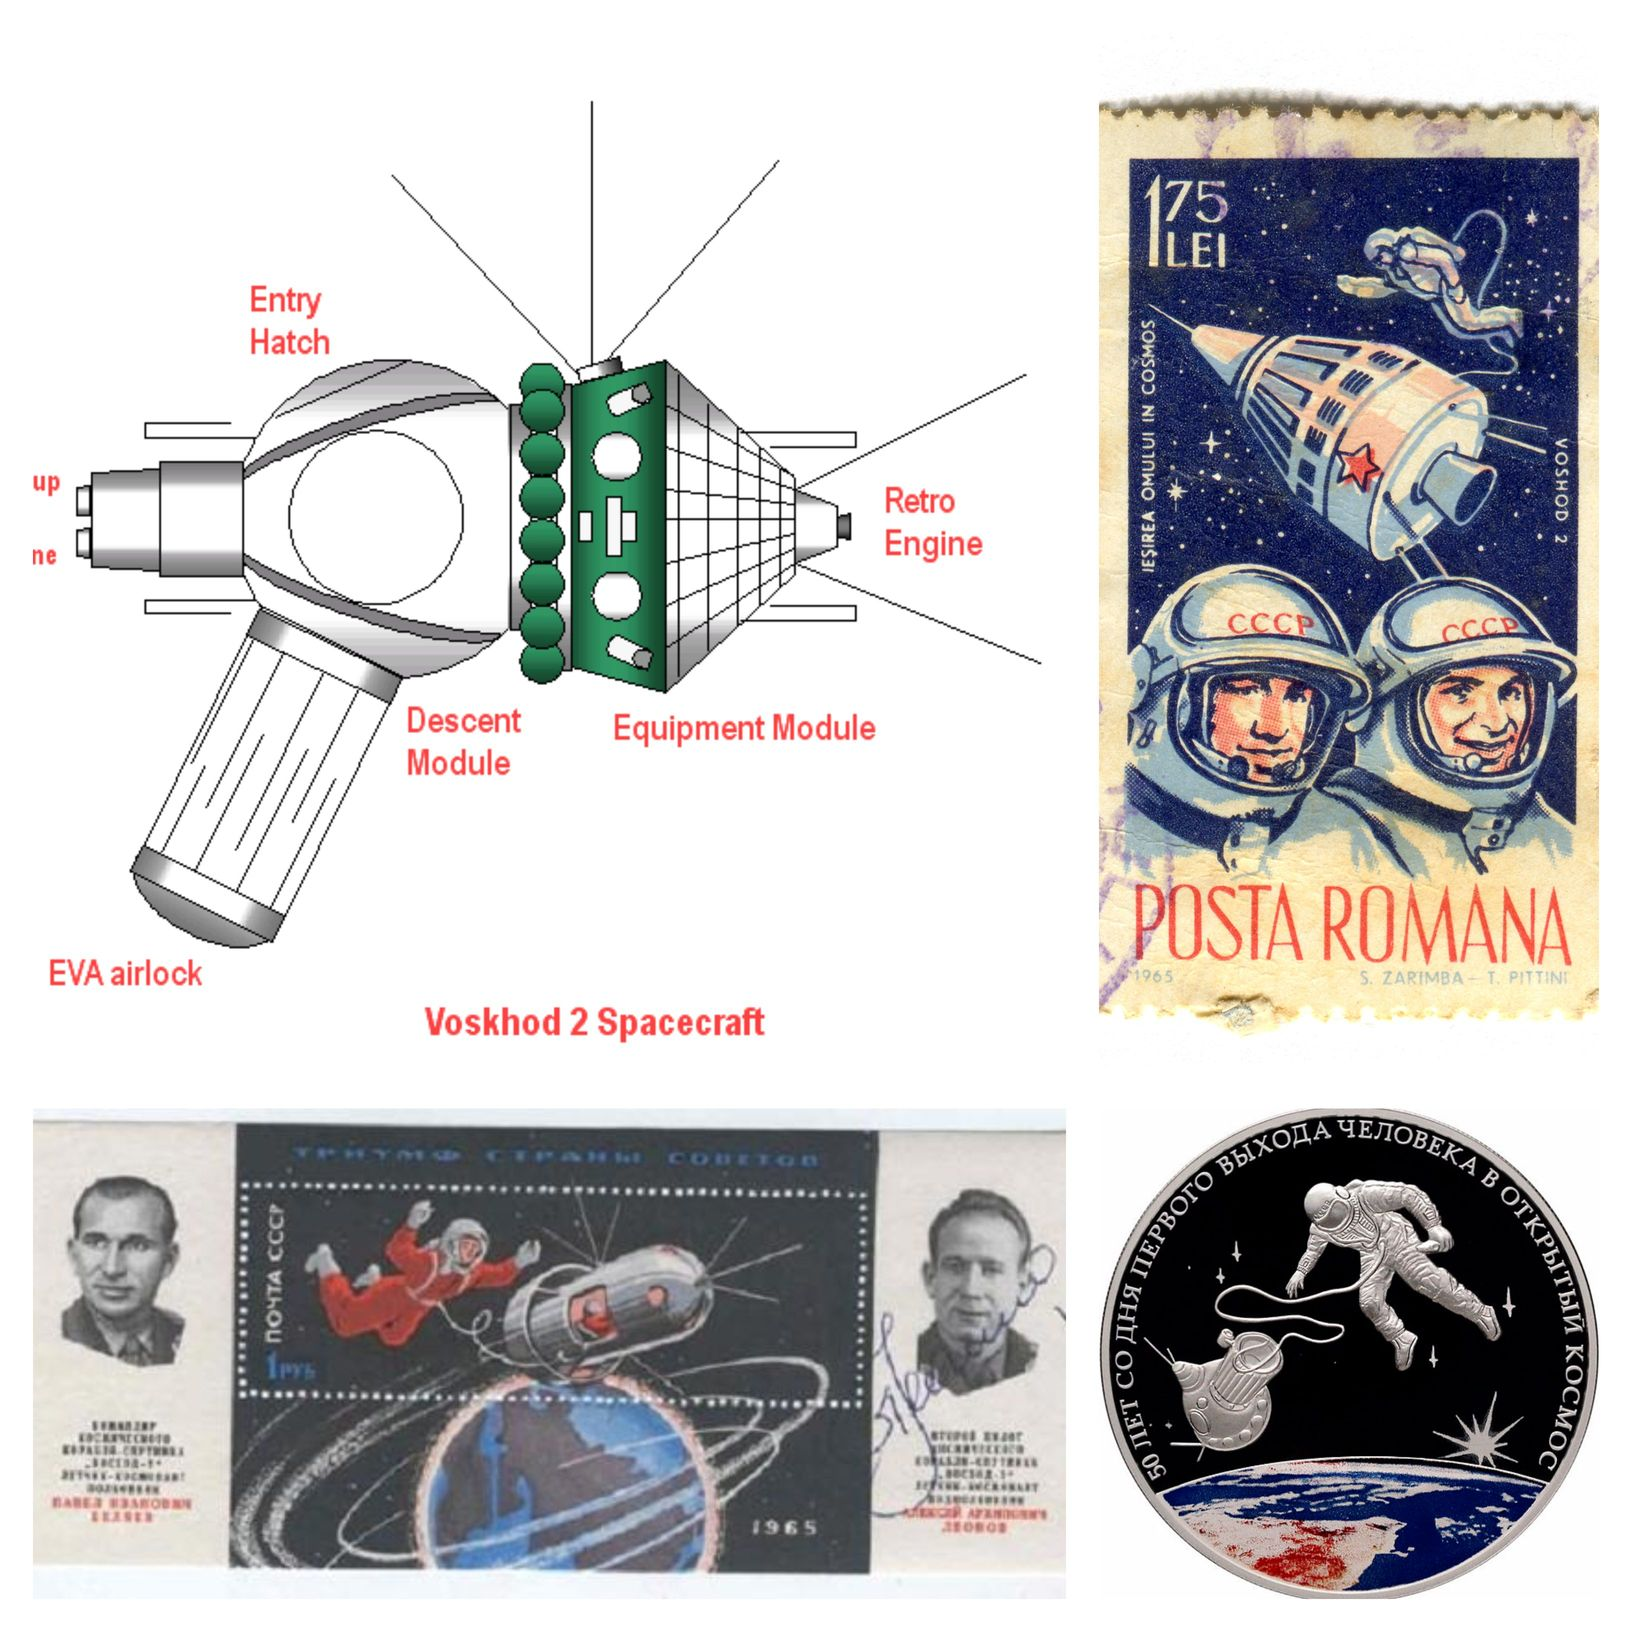 The Voskhod 2 spacecraft, along with Russian commemorative coin and Romanian stamp picturing Alexei Leonov. Credits: Wikimedia commons contributors.